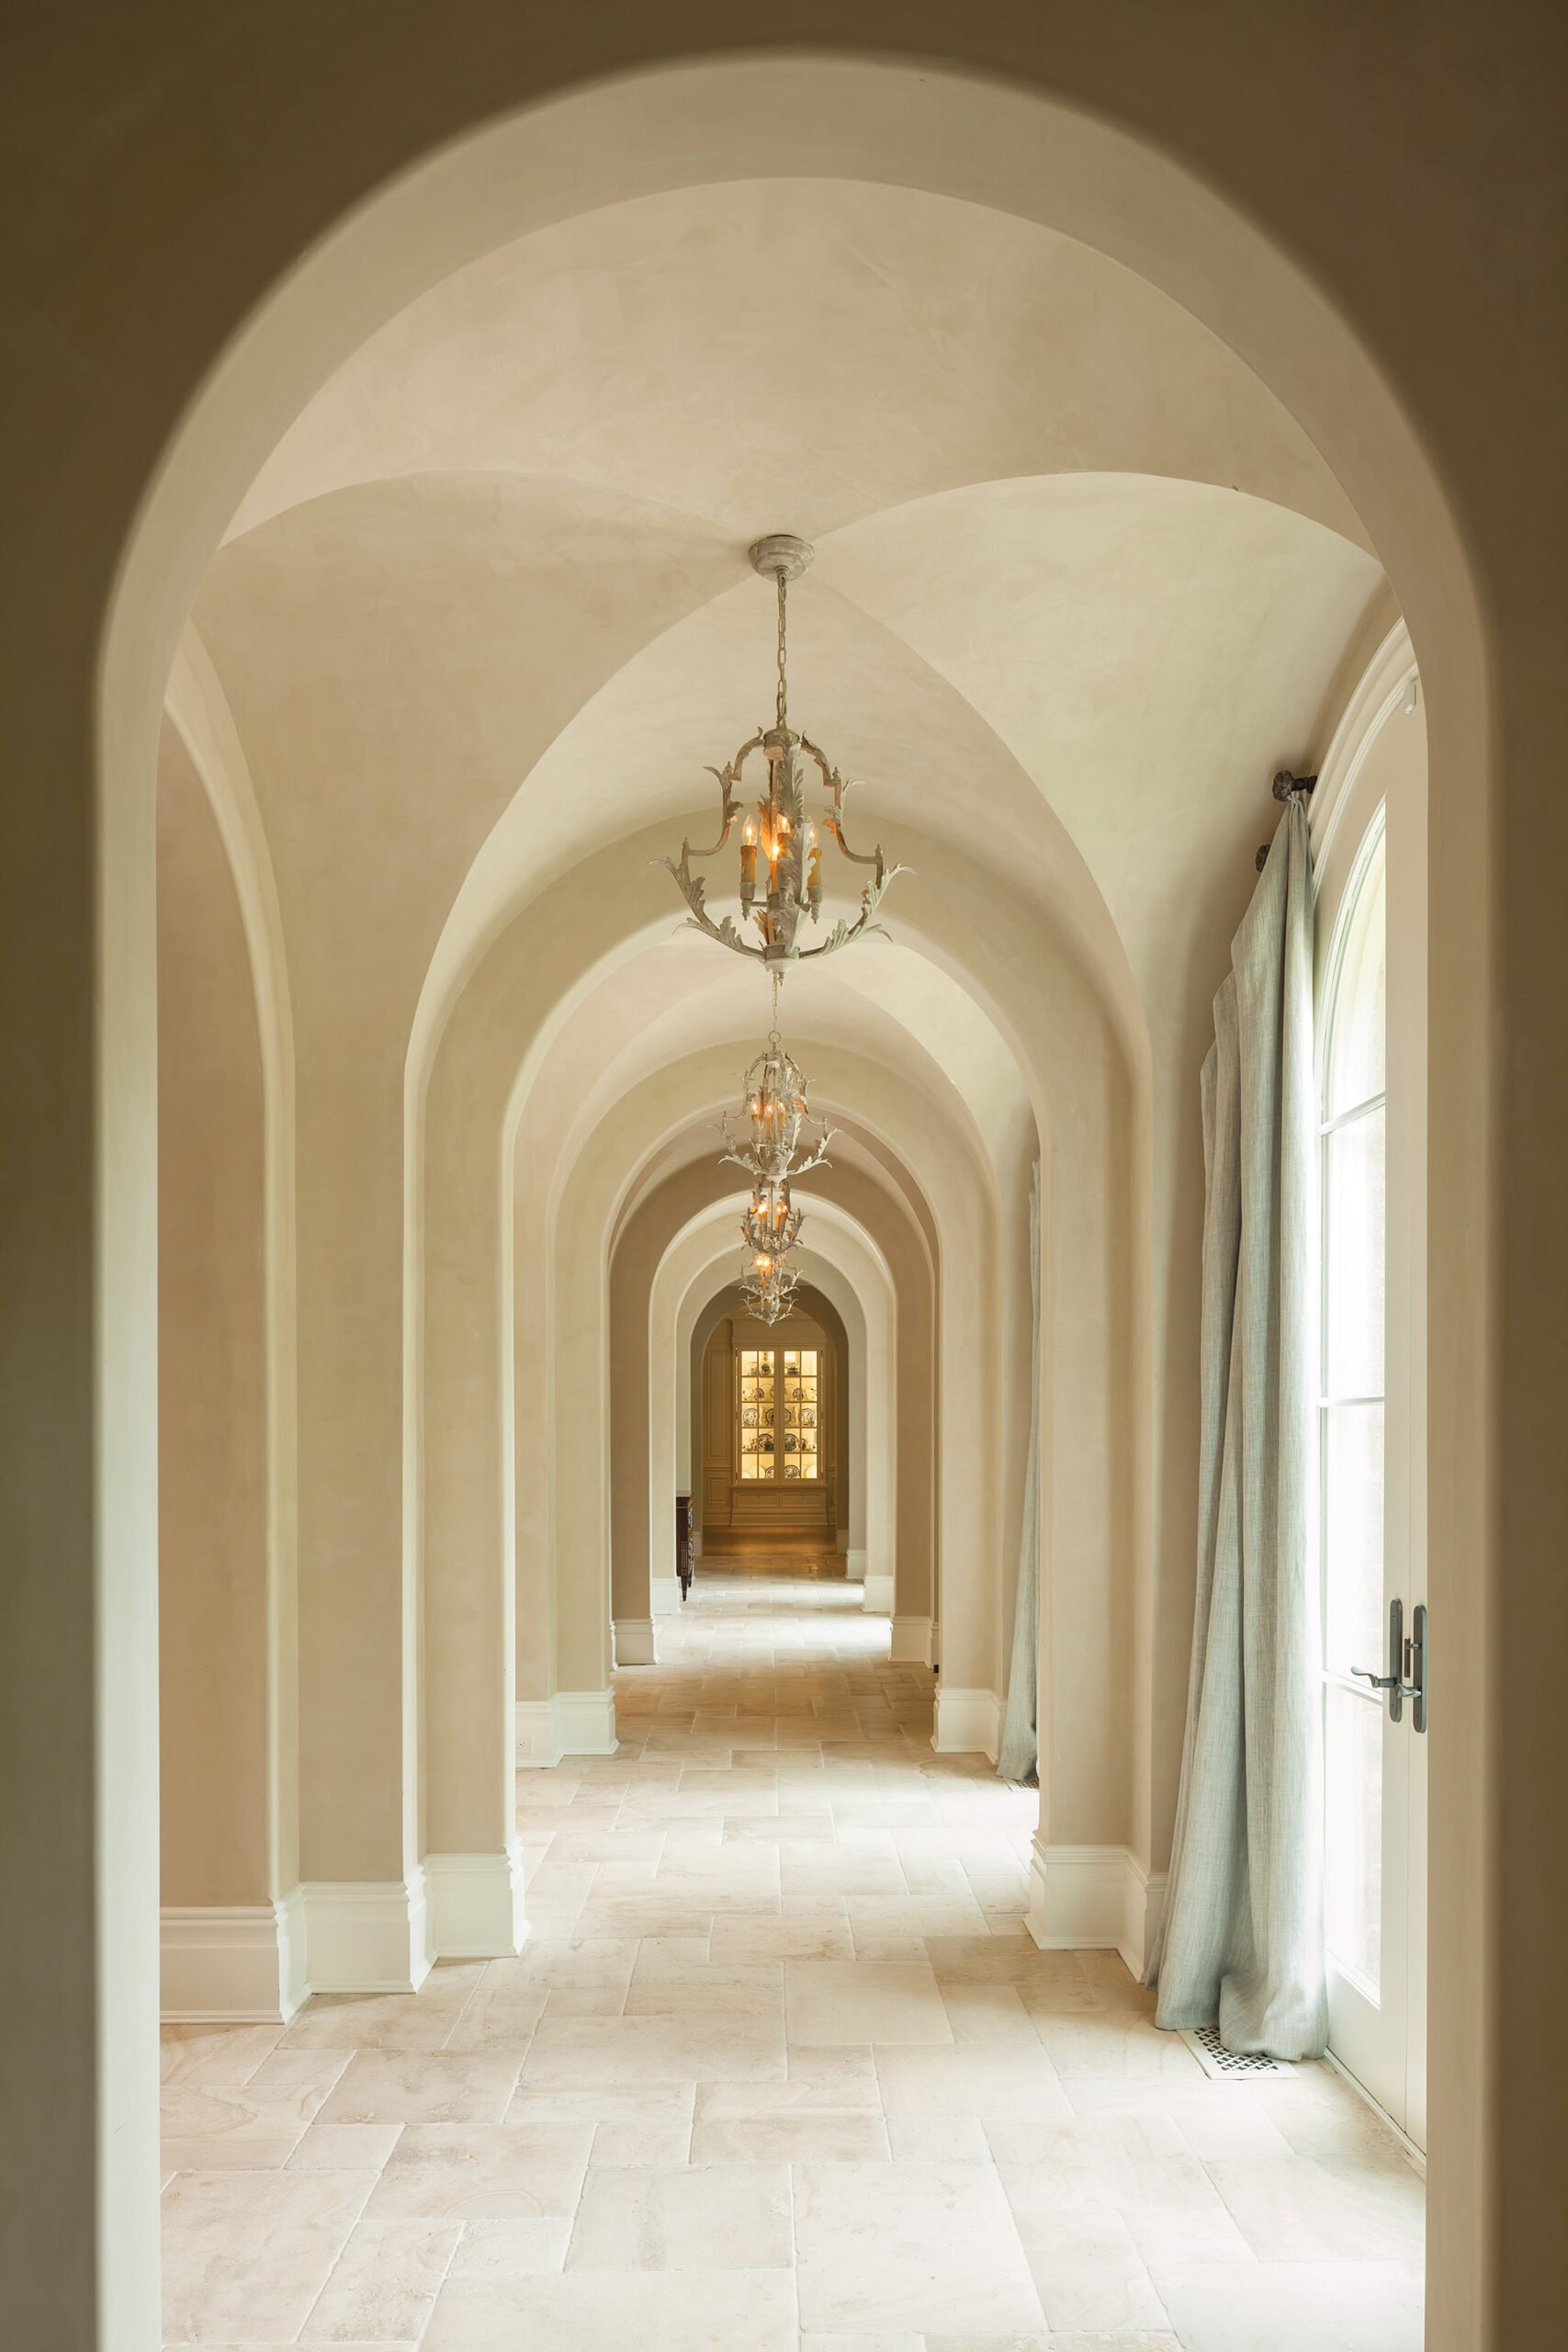 Acanthus leaf chandeliers by Aidan Gray light the dramatic groin-vaulted gallery